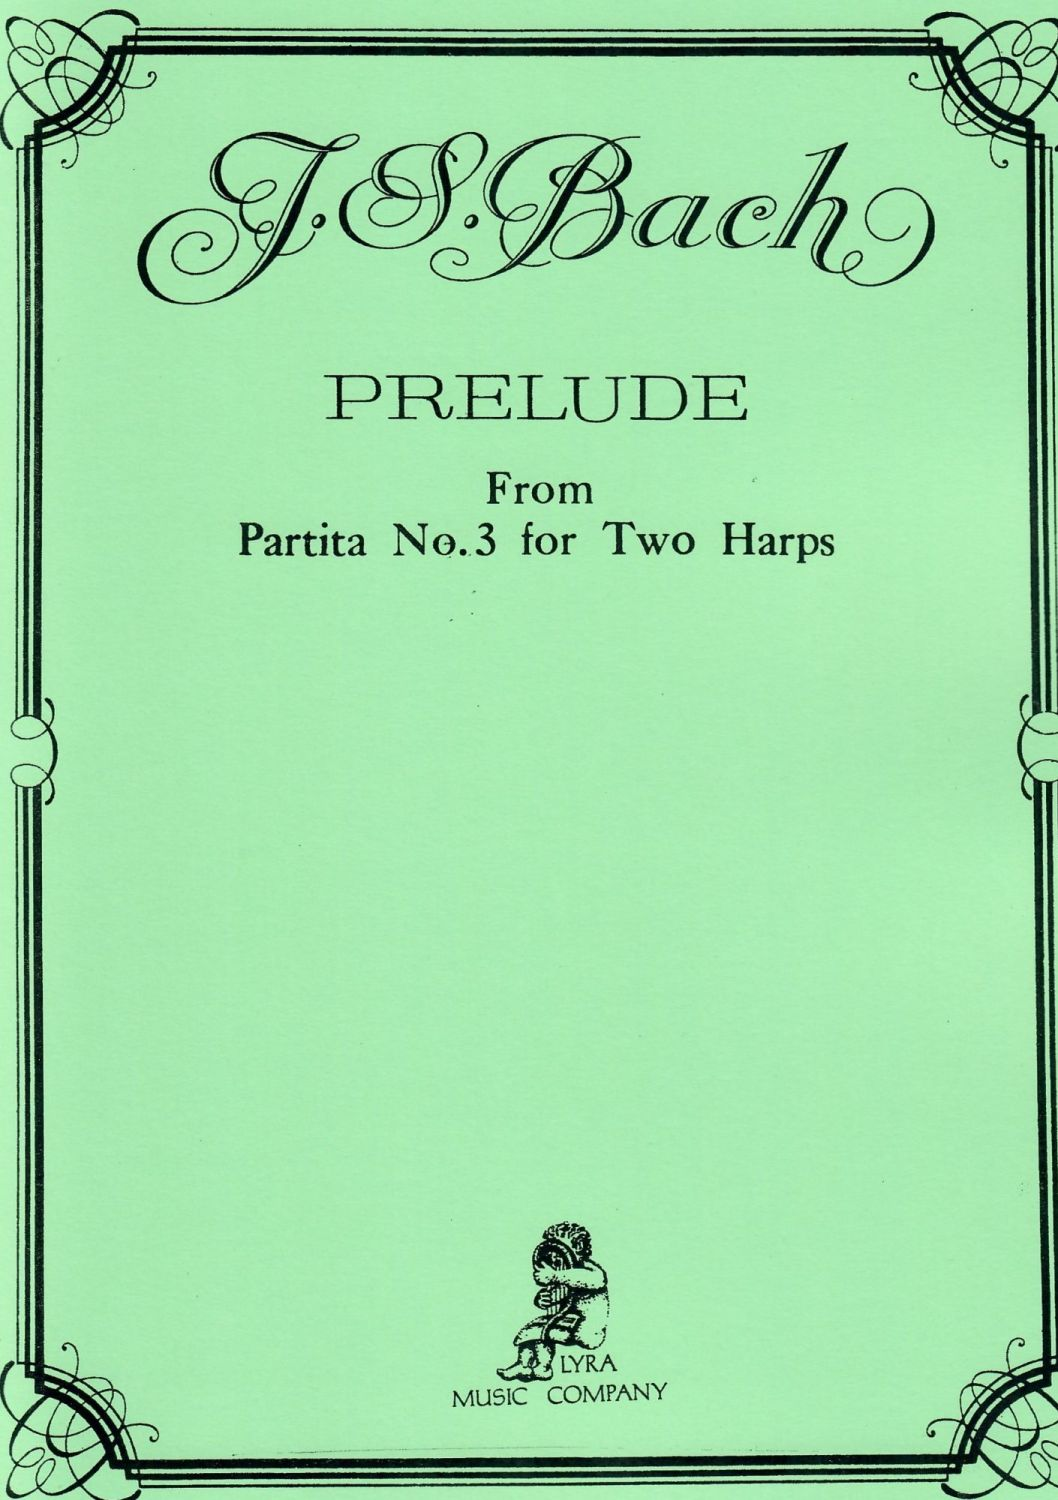 J.S. Bach - Prelude from Partita No. 3 for Two Harps